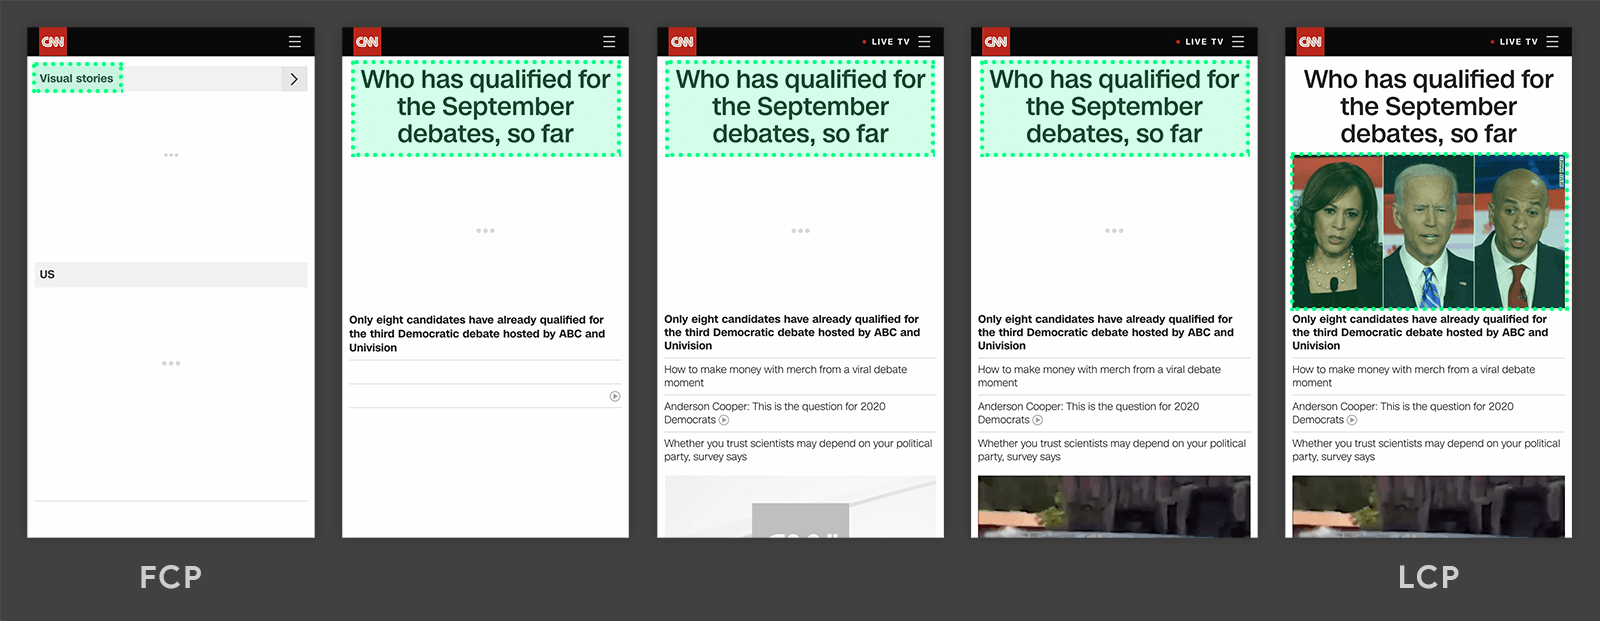 Largest Contentful Paint timeline from cnn.com